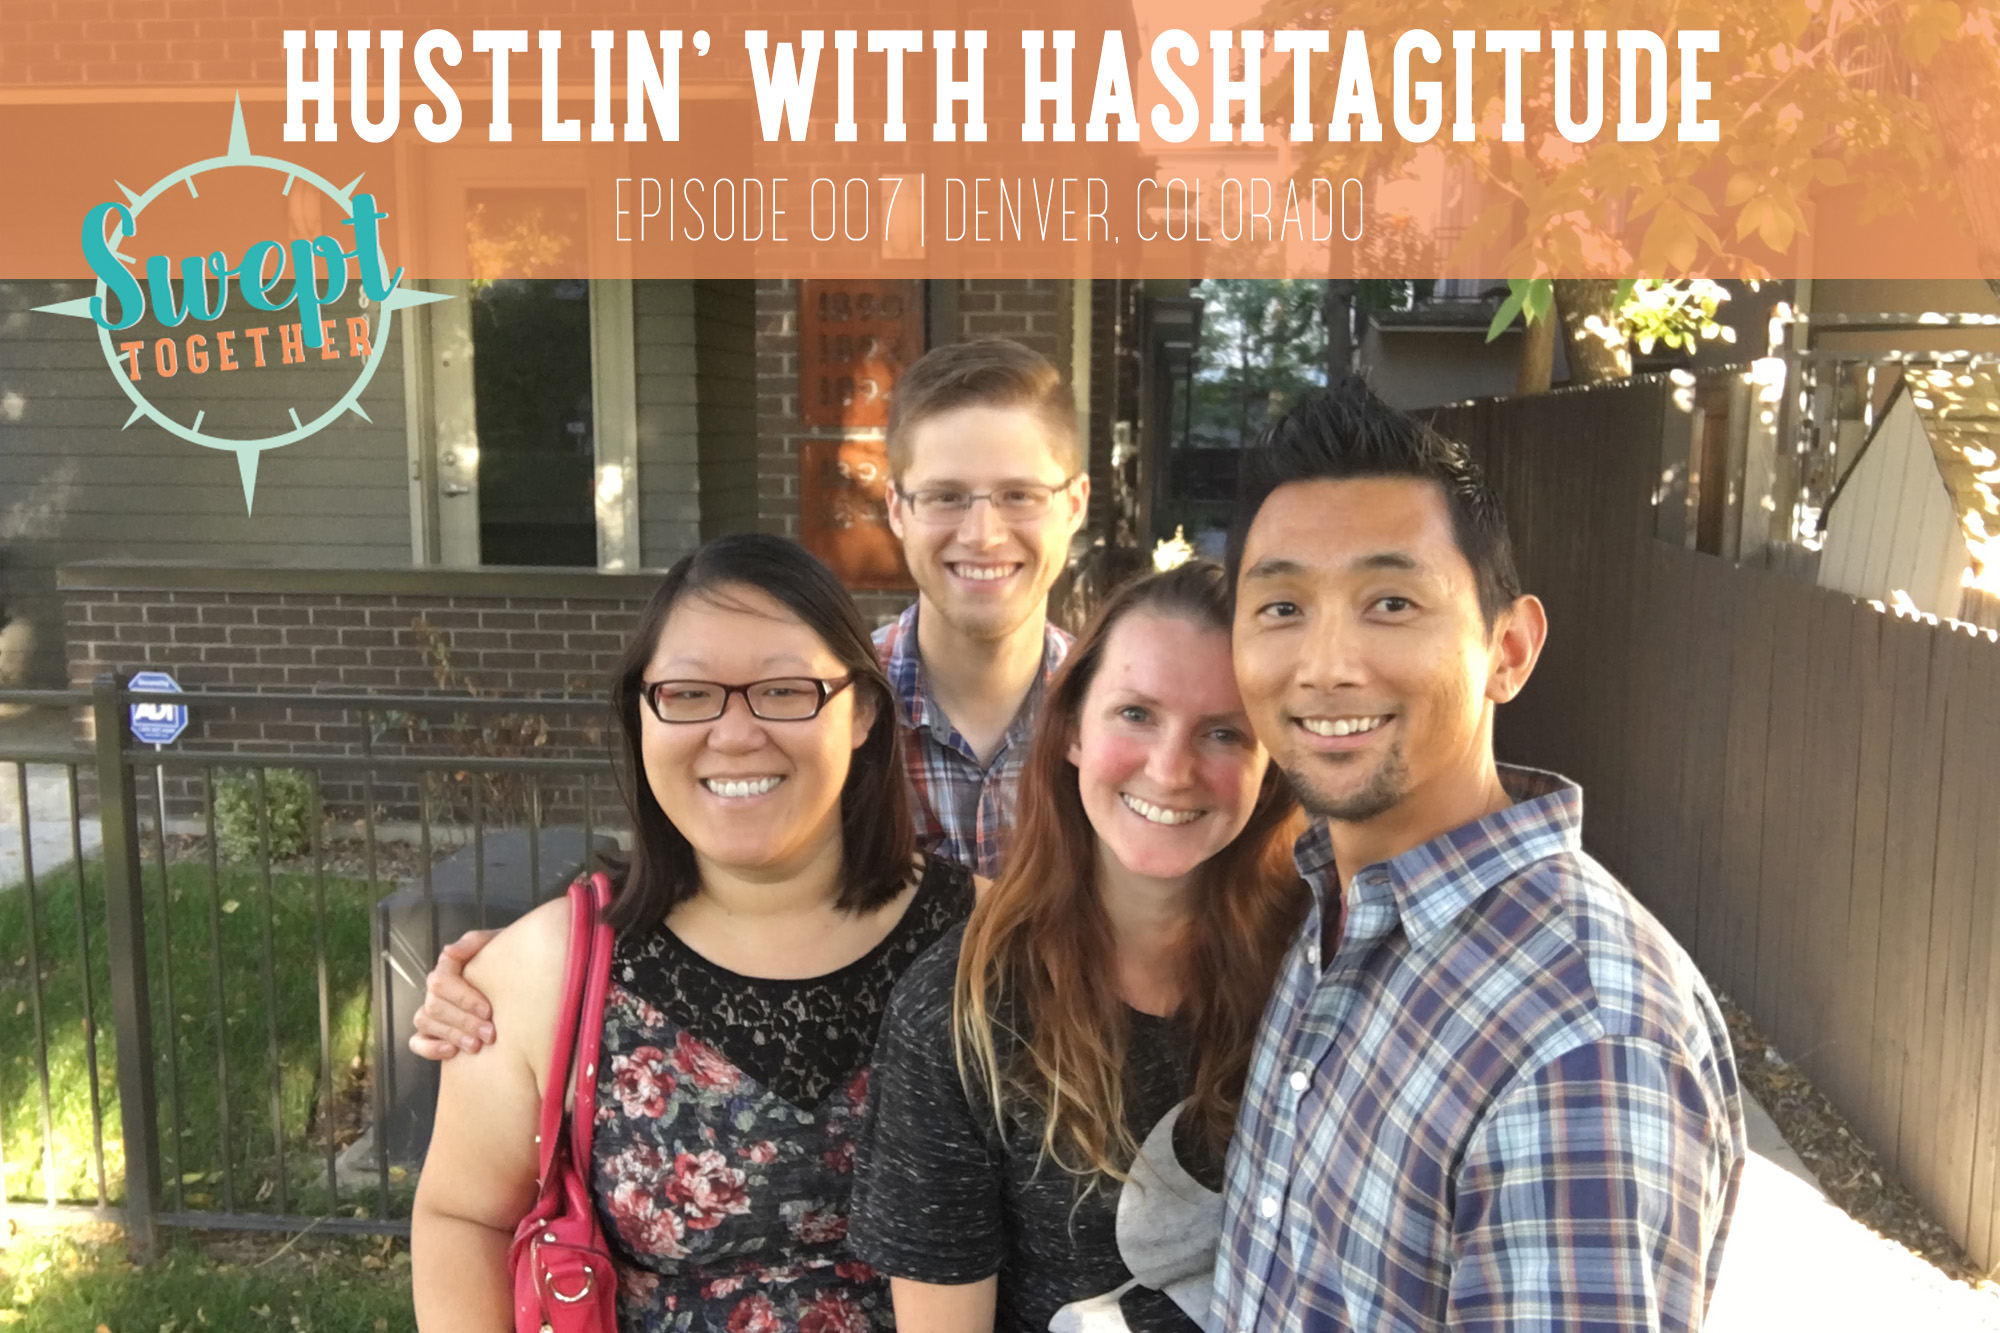 Our co-founders Helene and Ryan were interviewed on the Swept Together podcast in October 2016.